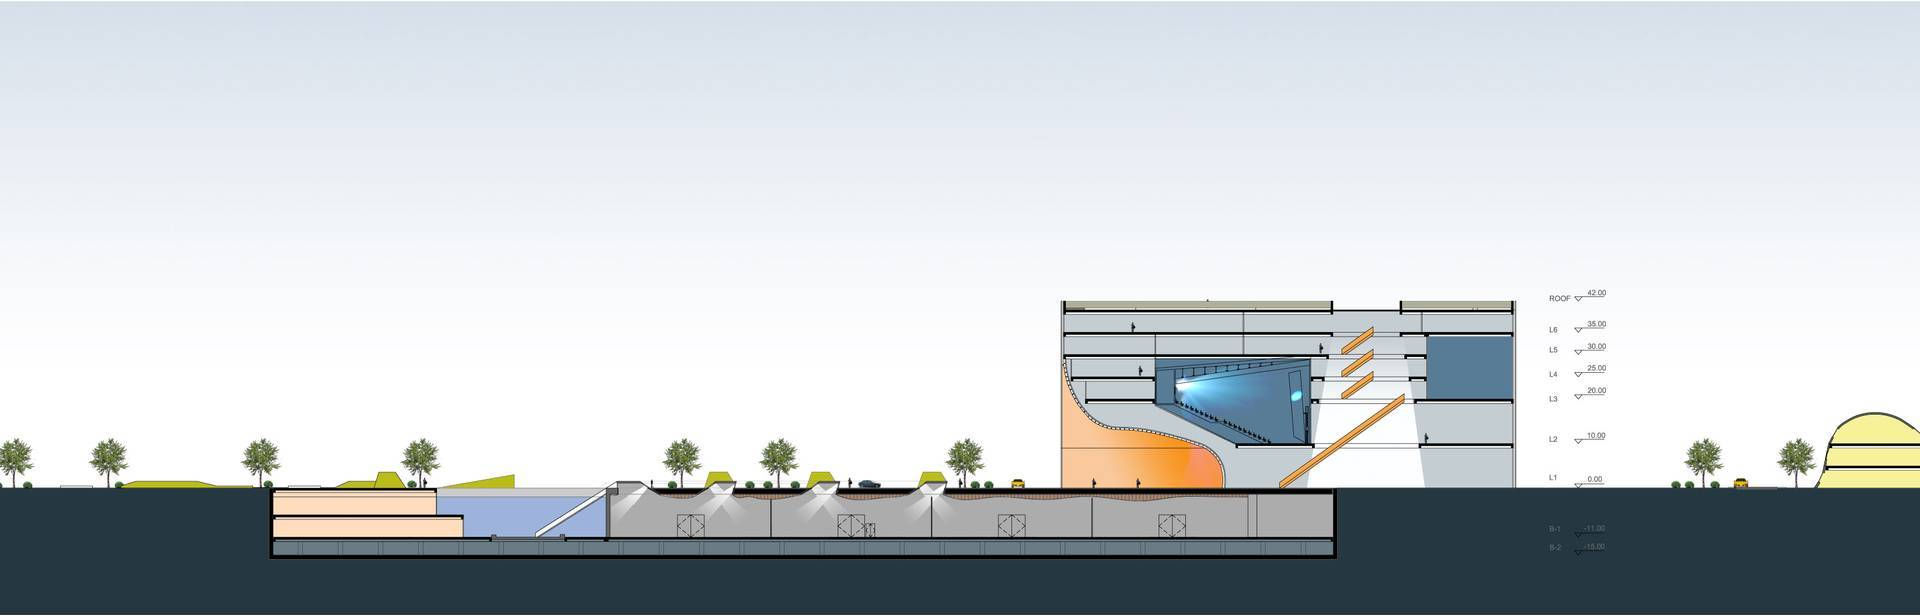 Tau Architect Animation Museum At Hangzhou China China Site-Plan-Cross-Section-View Kontemporer  3684